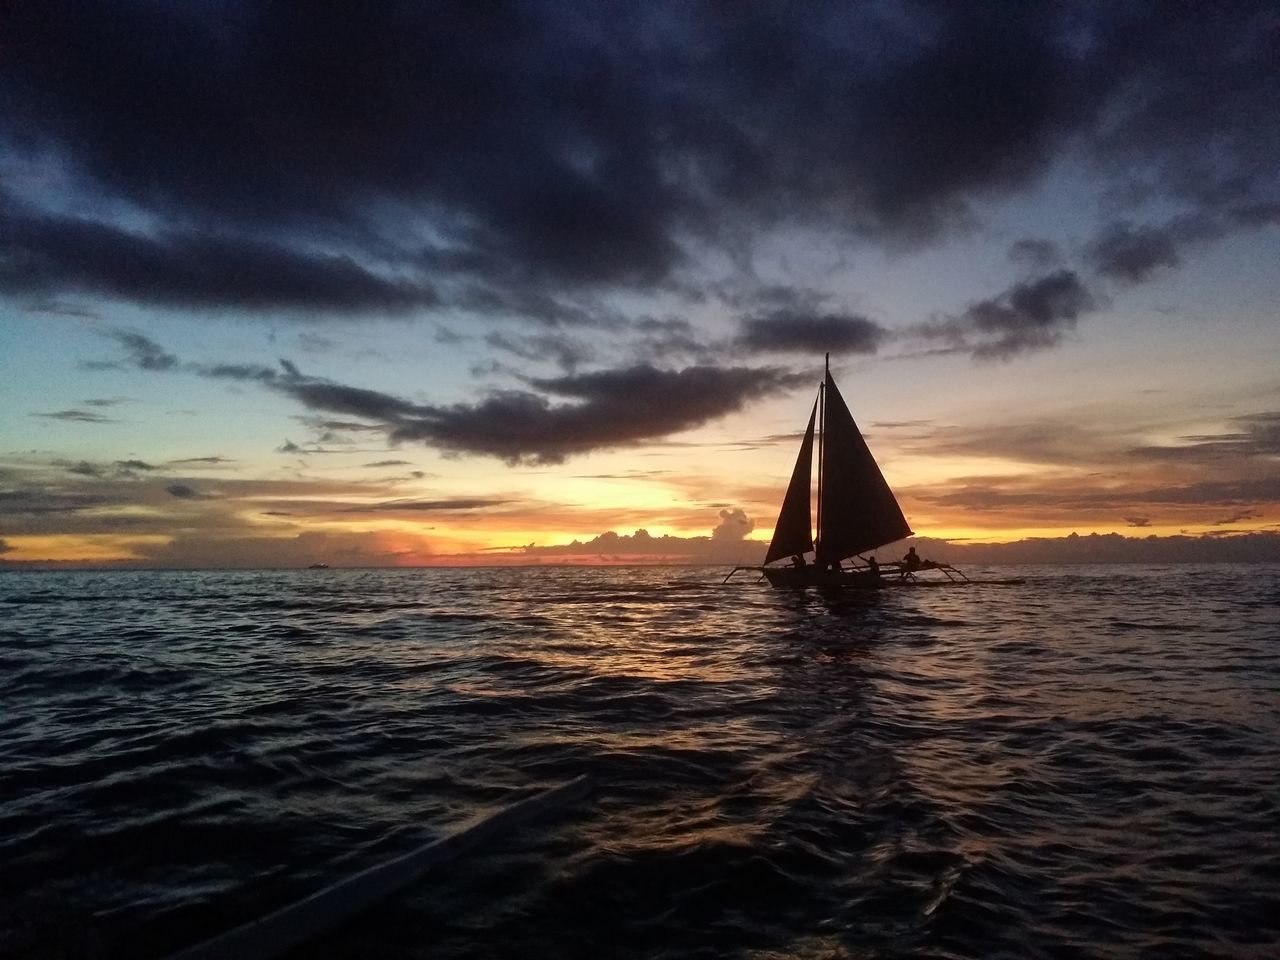 Silhouette Sailboat Sailing In Sea Against Sky At Sunset